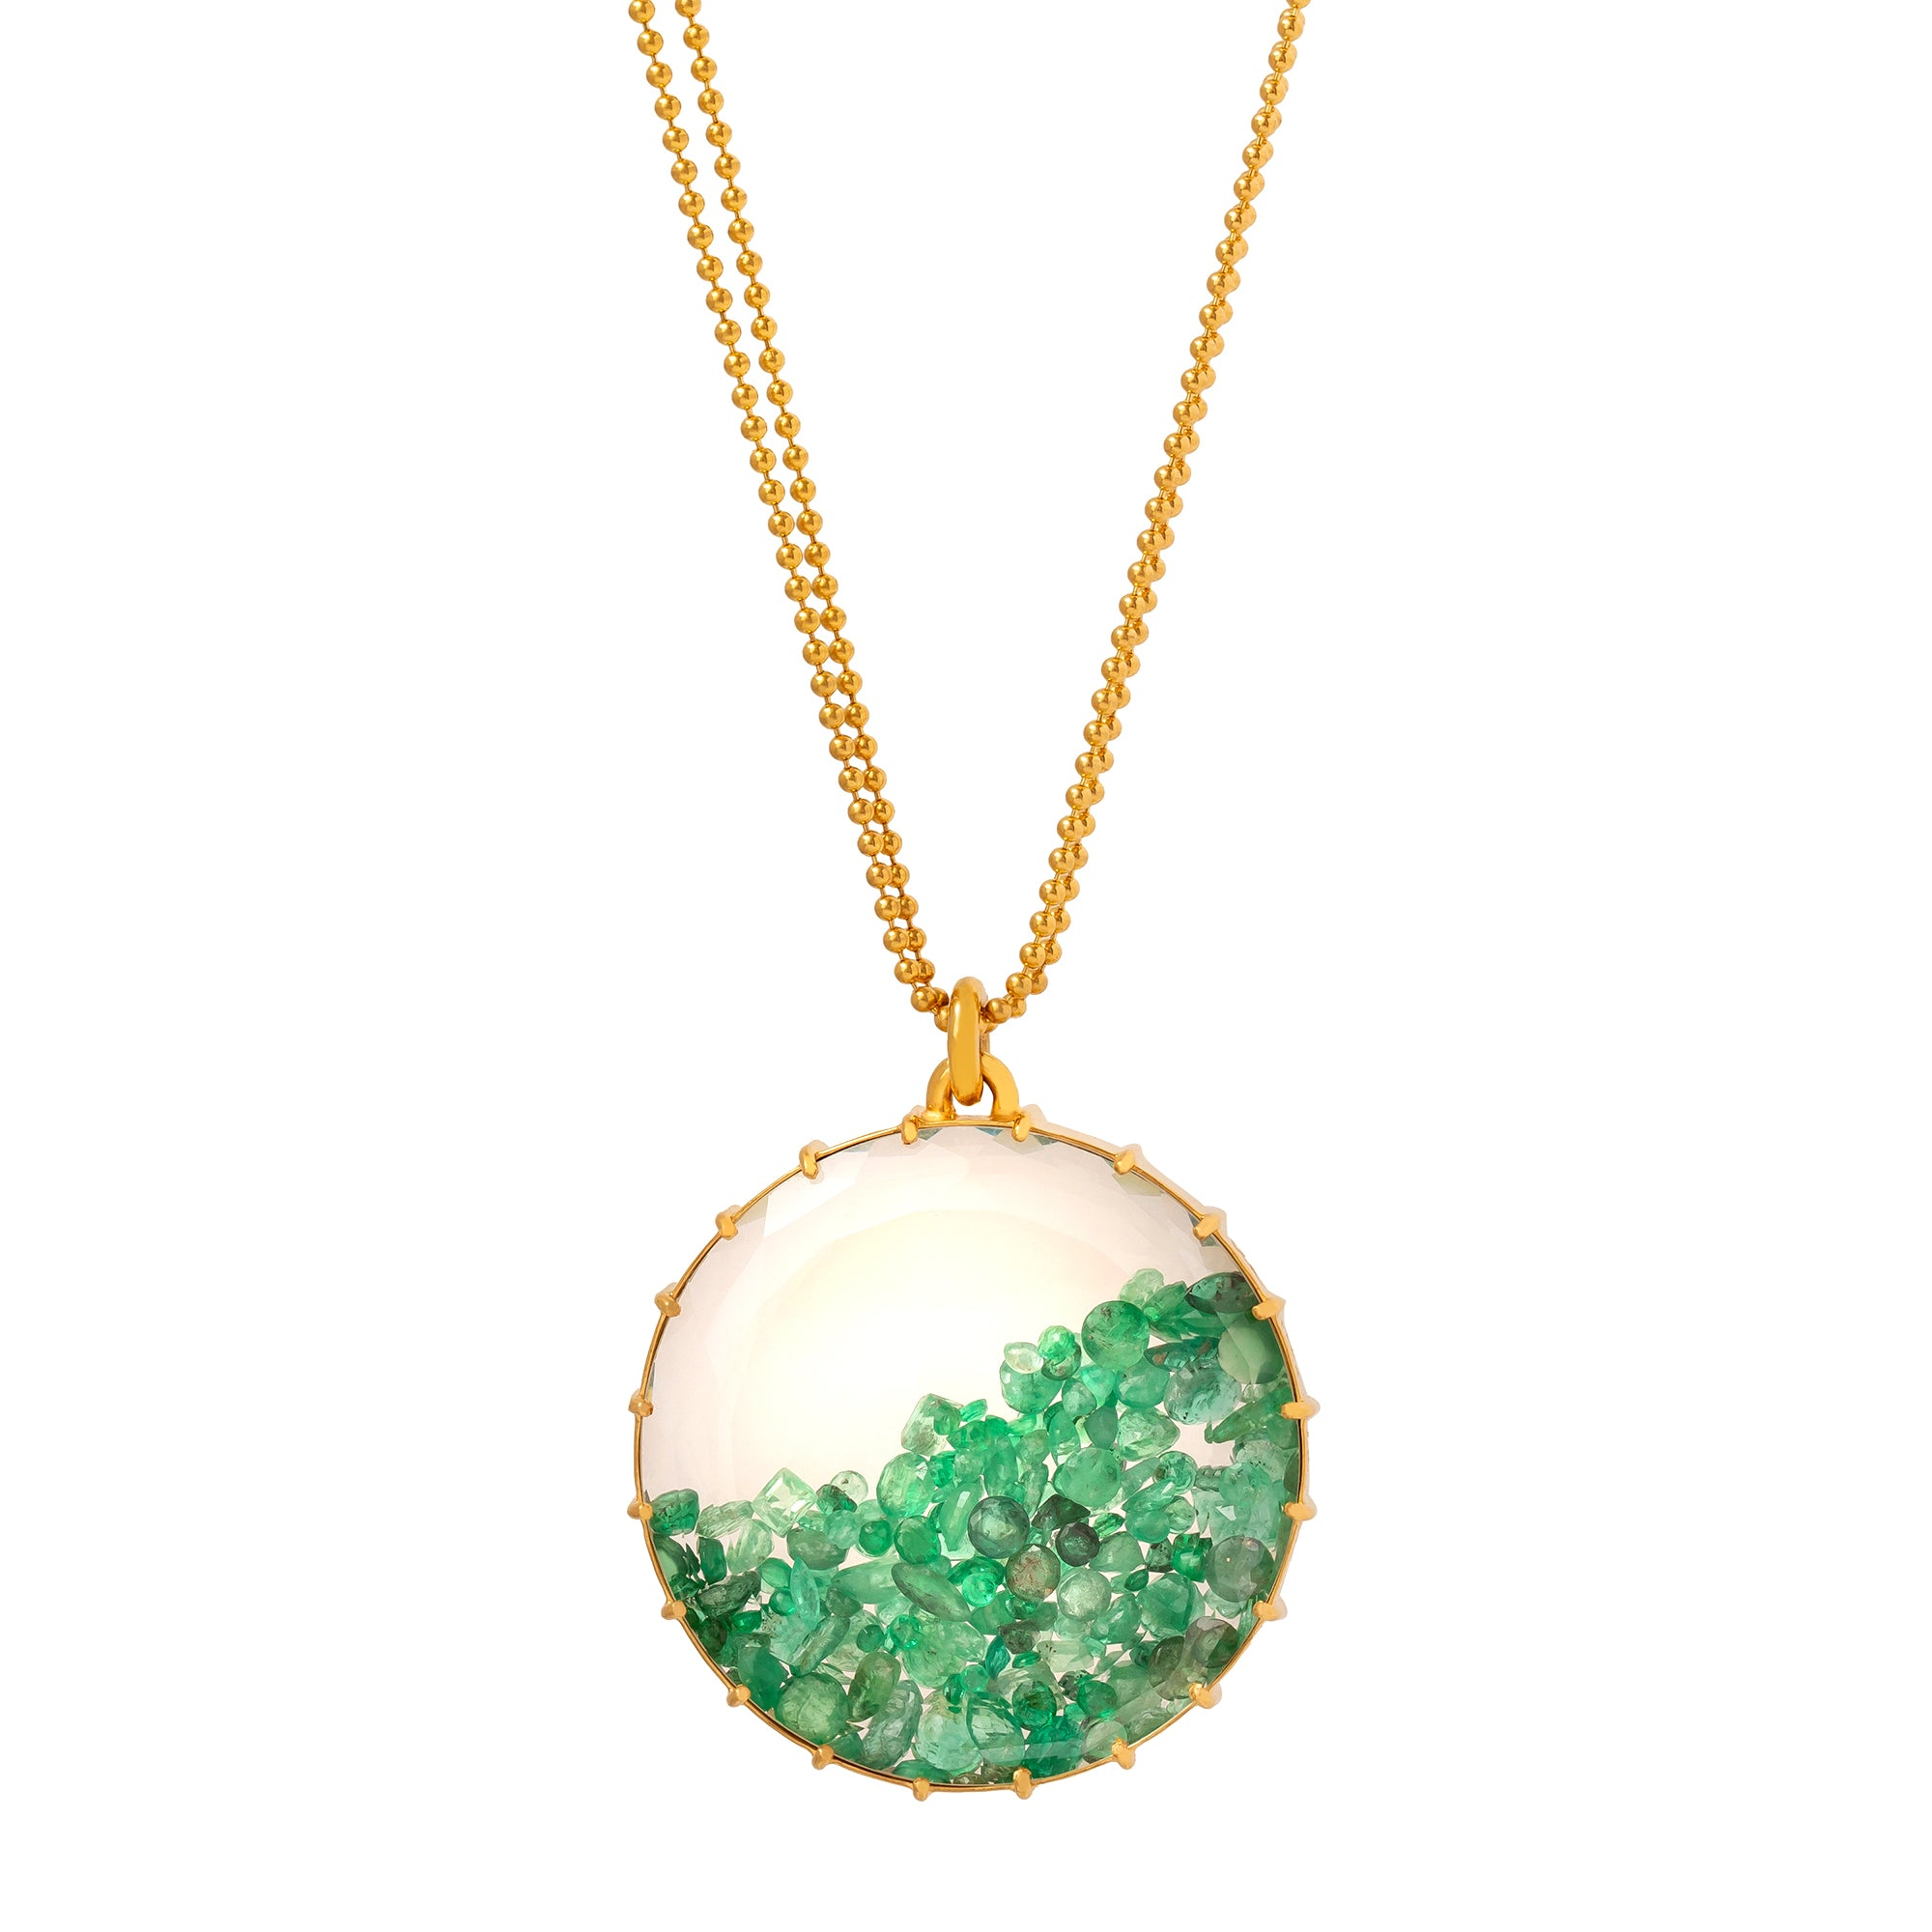 Renee Lewis Round Shake Necklace - Emerald - Necklaces - Broken English Jewelry